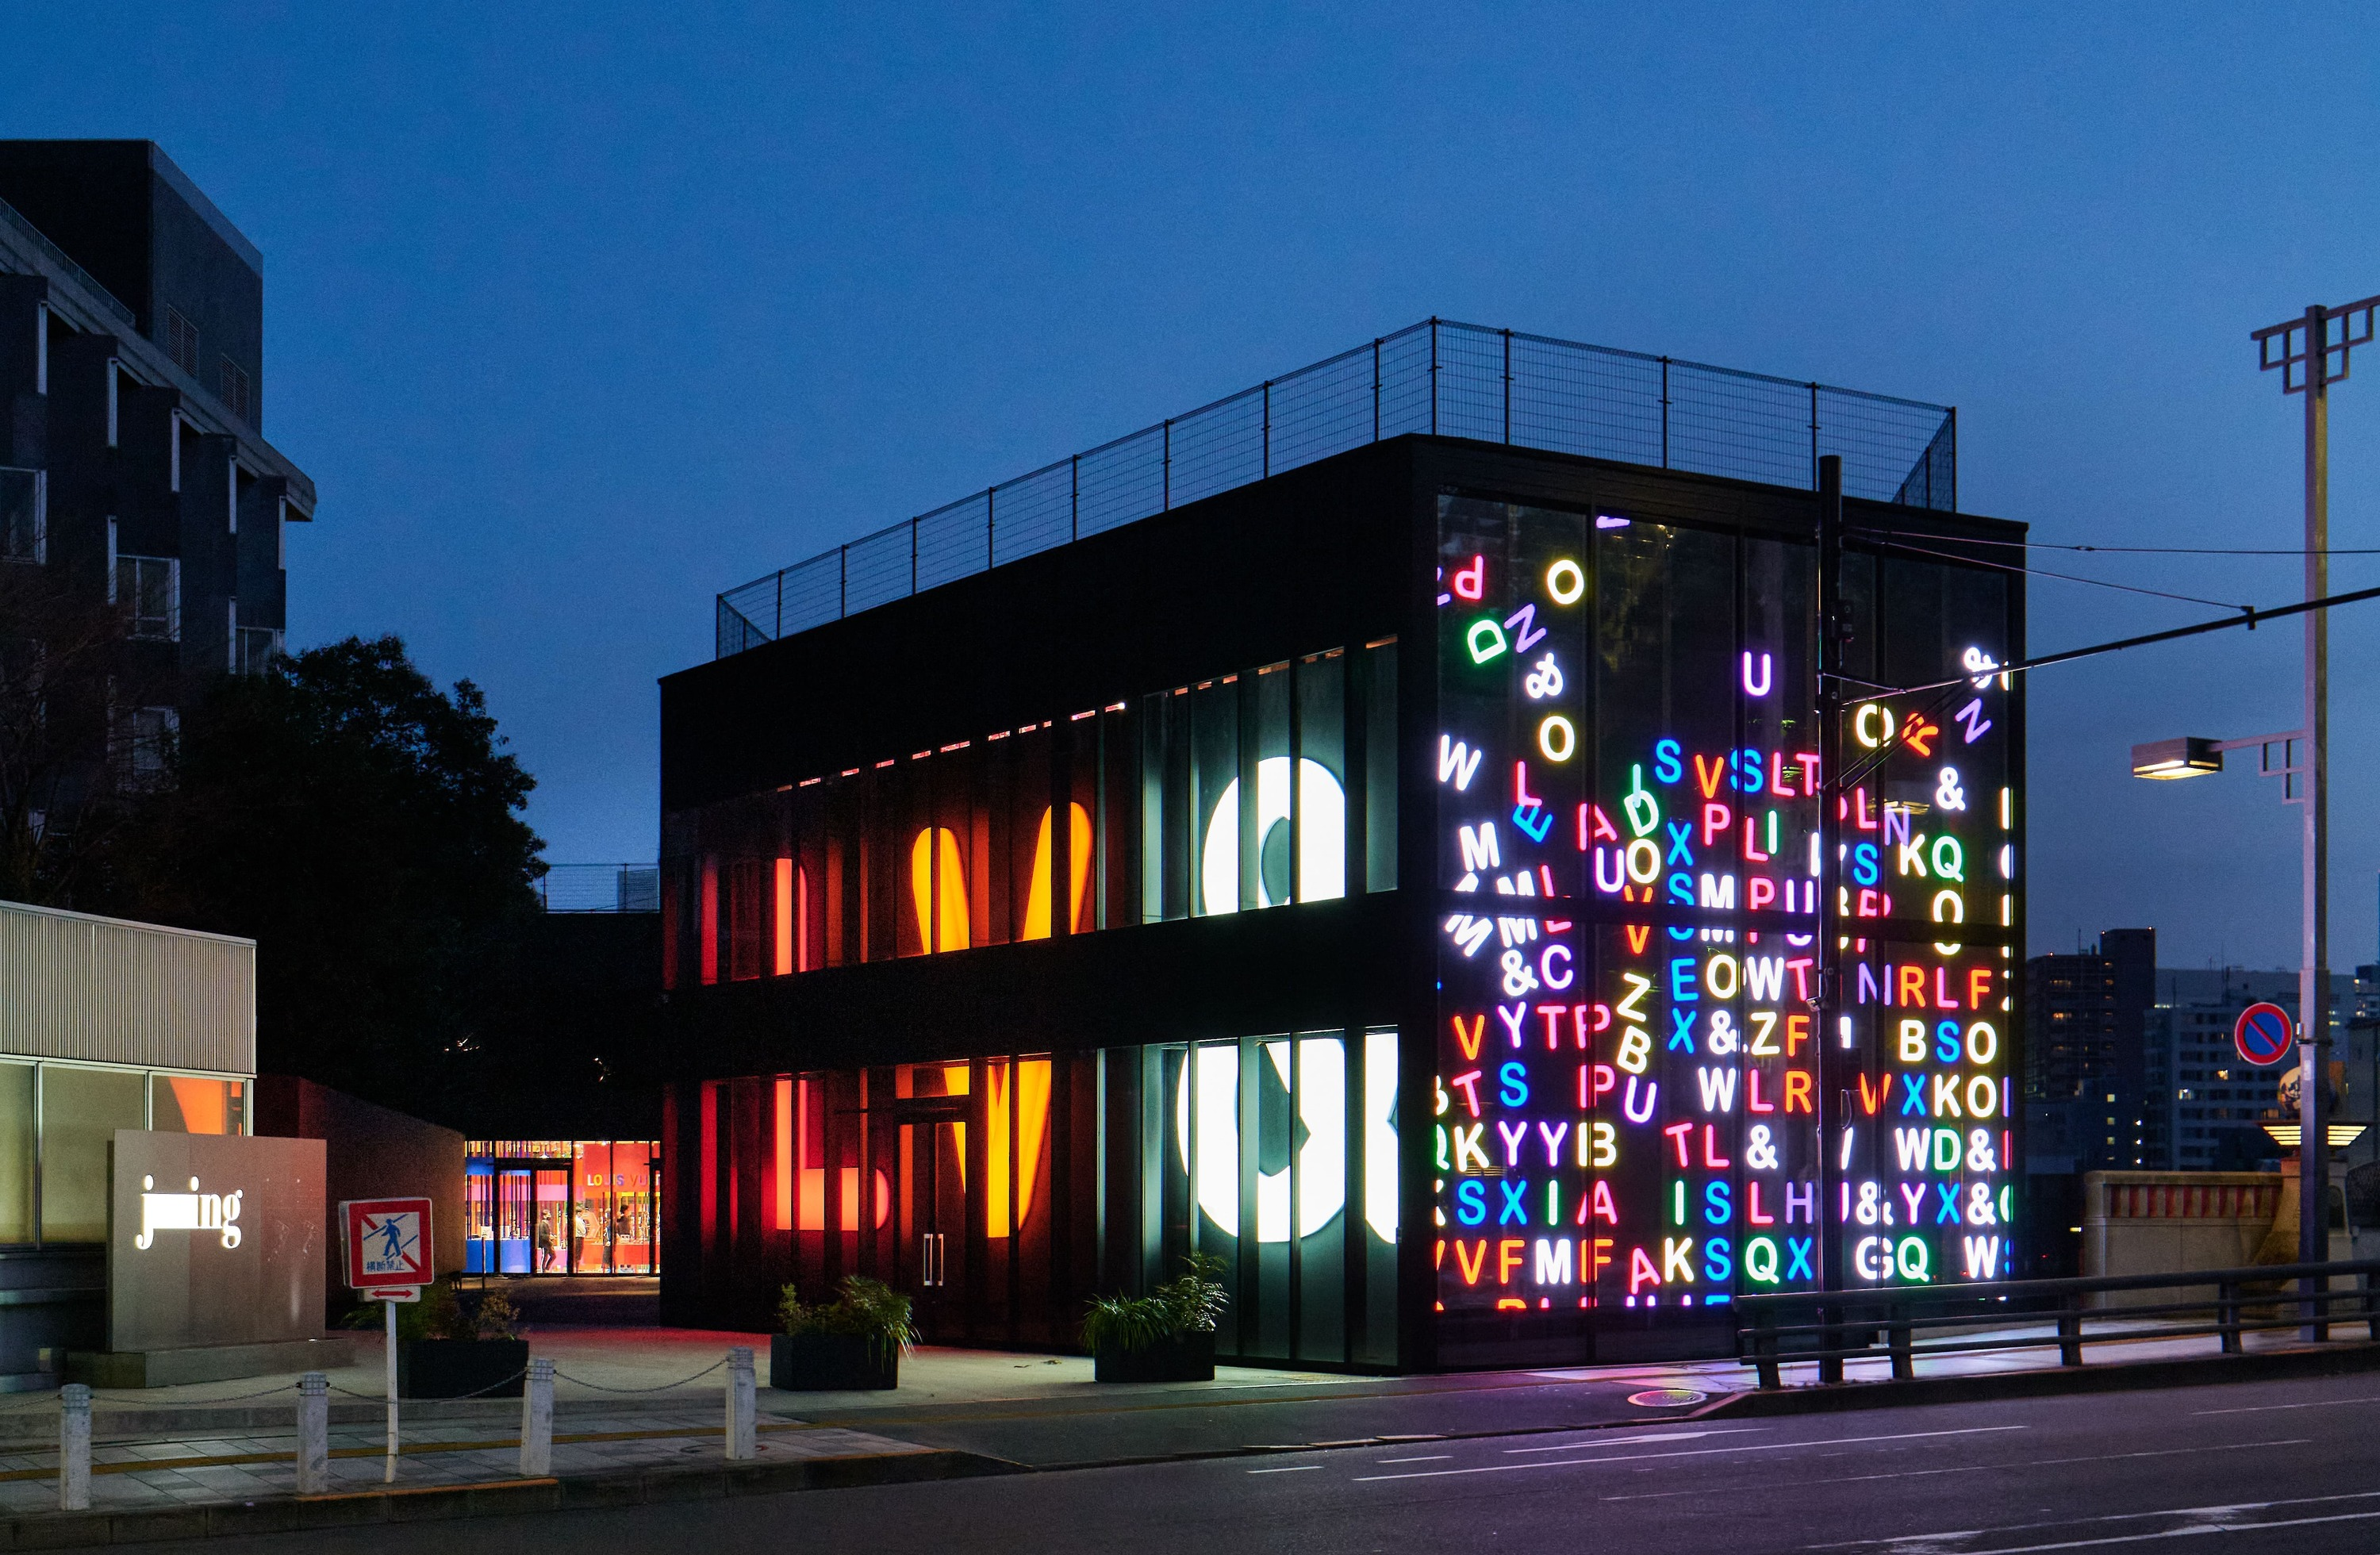 Louis Vuitton has a free exhibition in Harajuku showing its most iconic designs